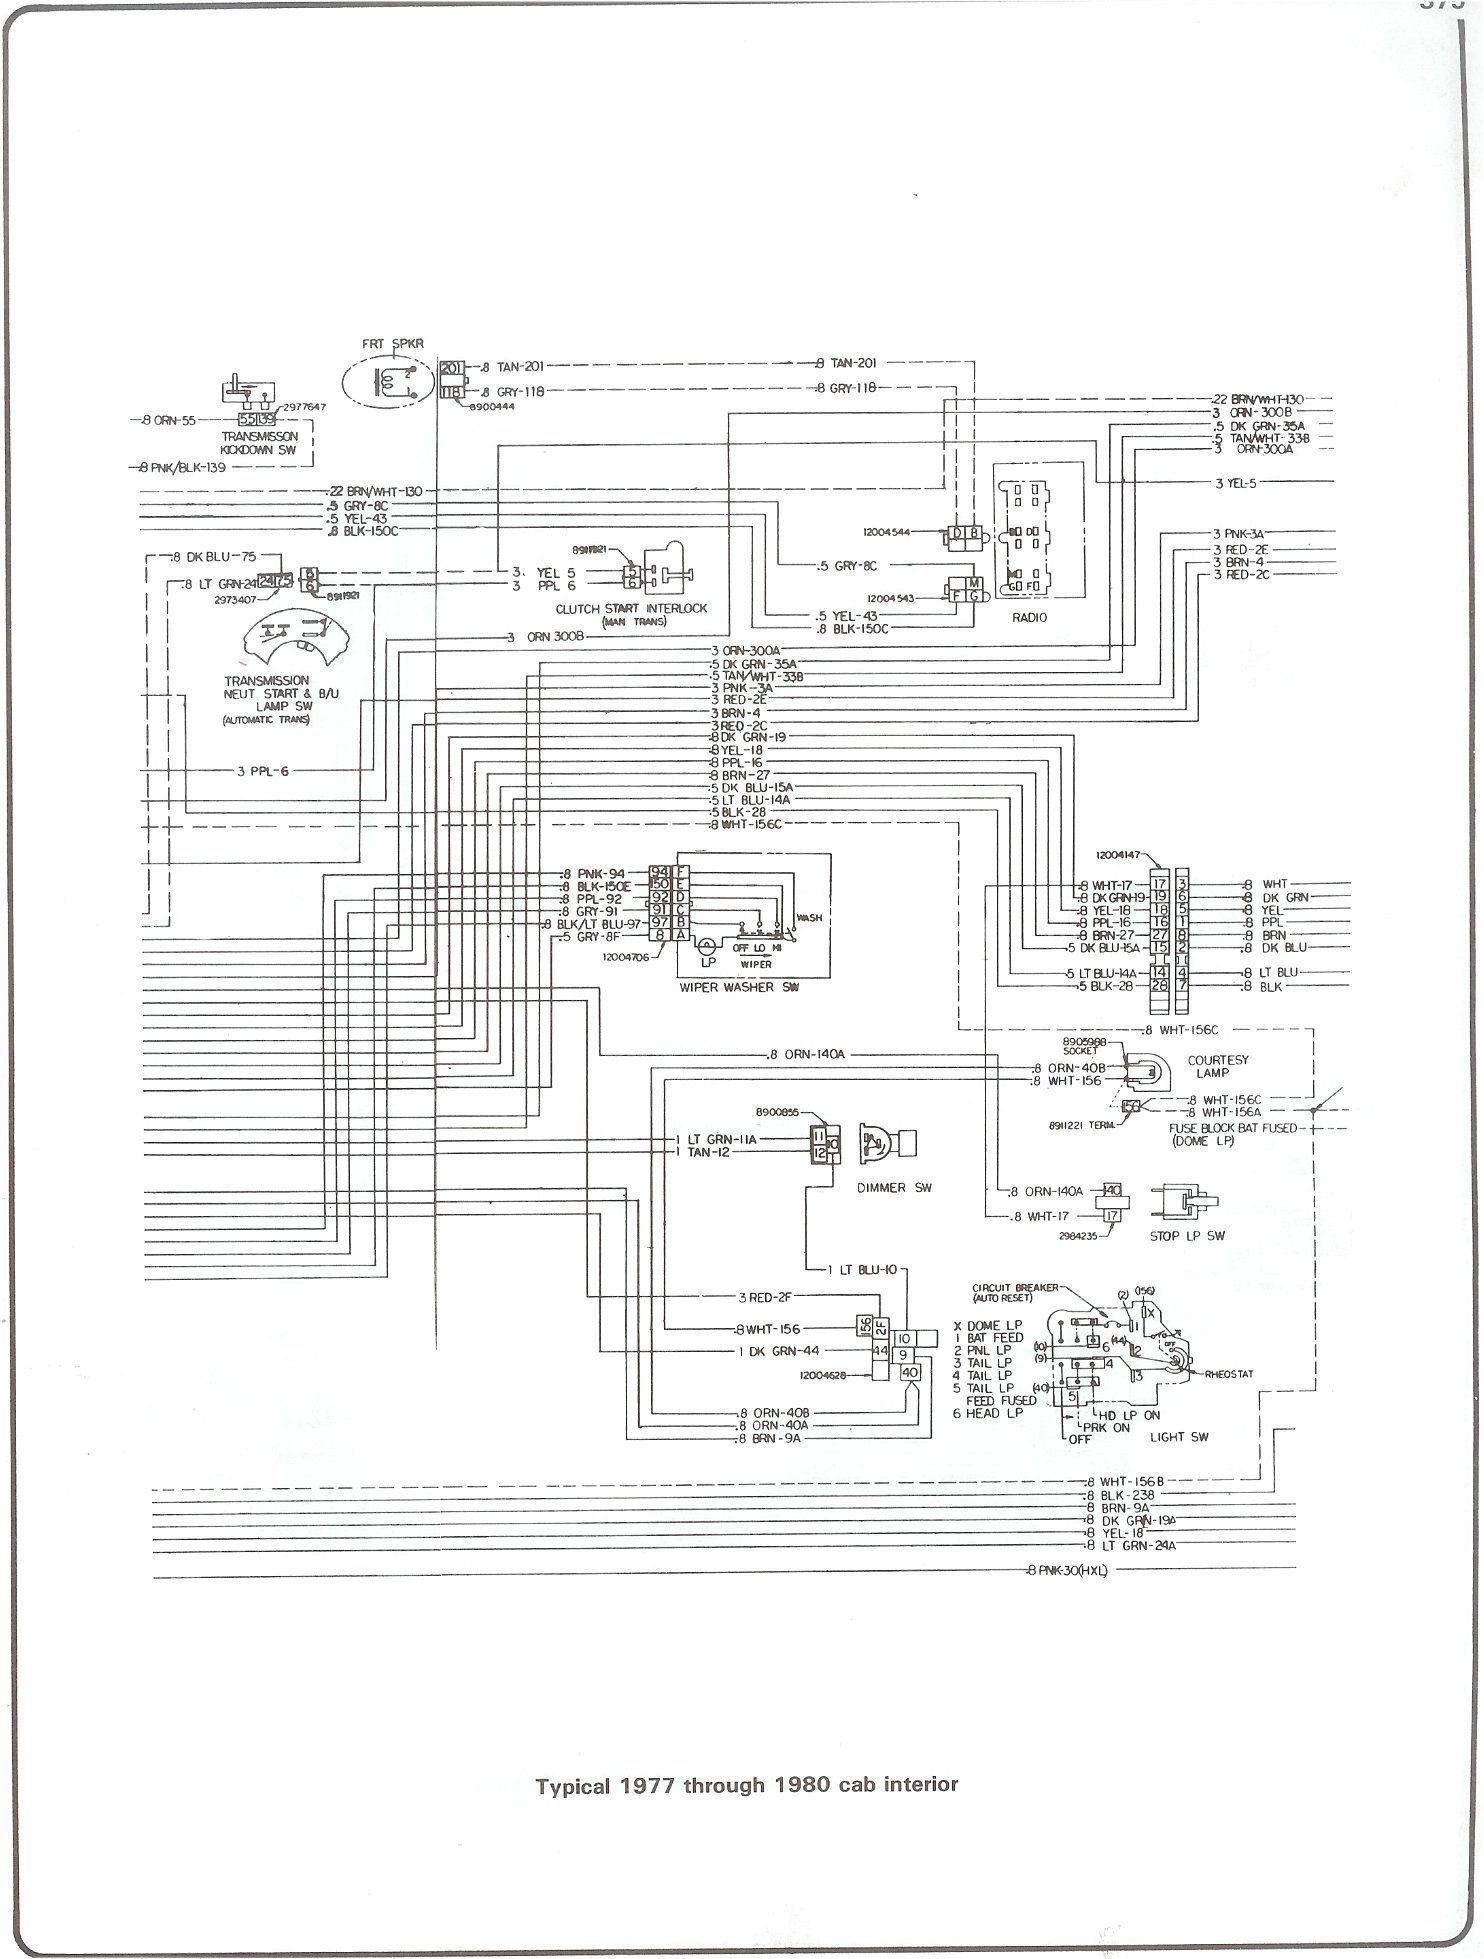 77 80_cab_inter complete 73 87 wiring diagrams 84 chevy truck wiring harness at bayanpartner.co